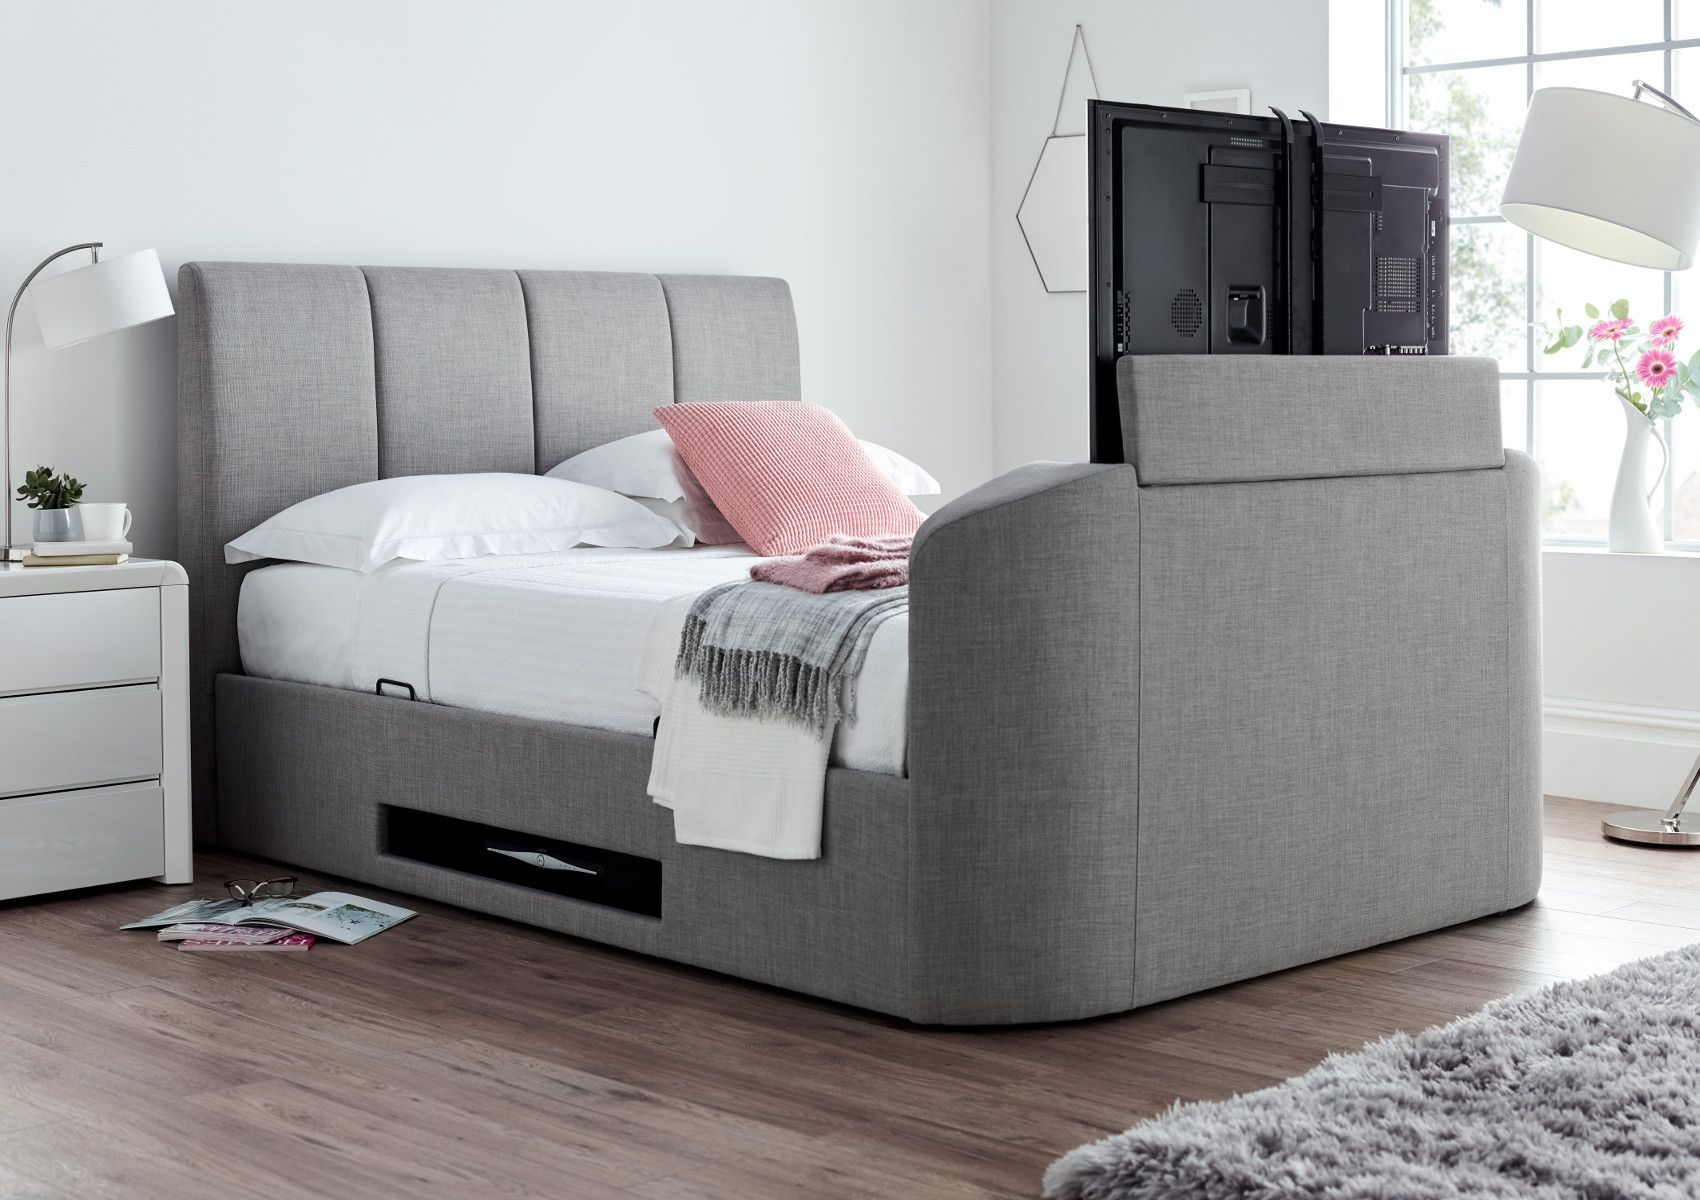 Remarkable Copenhagen Upholstered Ottoman Tv Bed Mid Grey In 2019 Theyellowbook Wood Chair Design Ideas Theyellowbookinfo